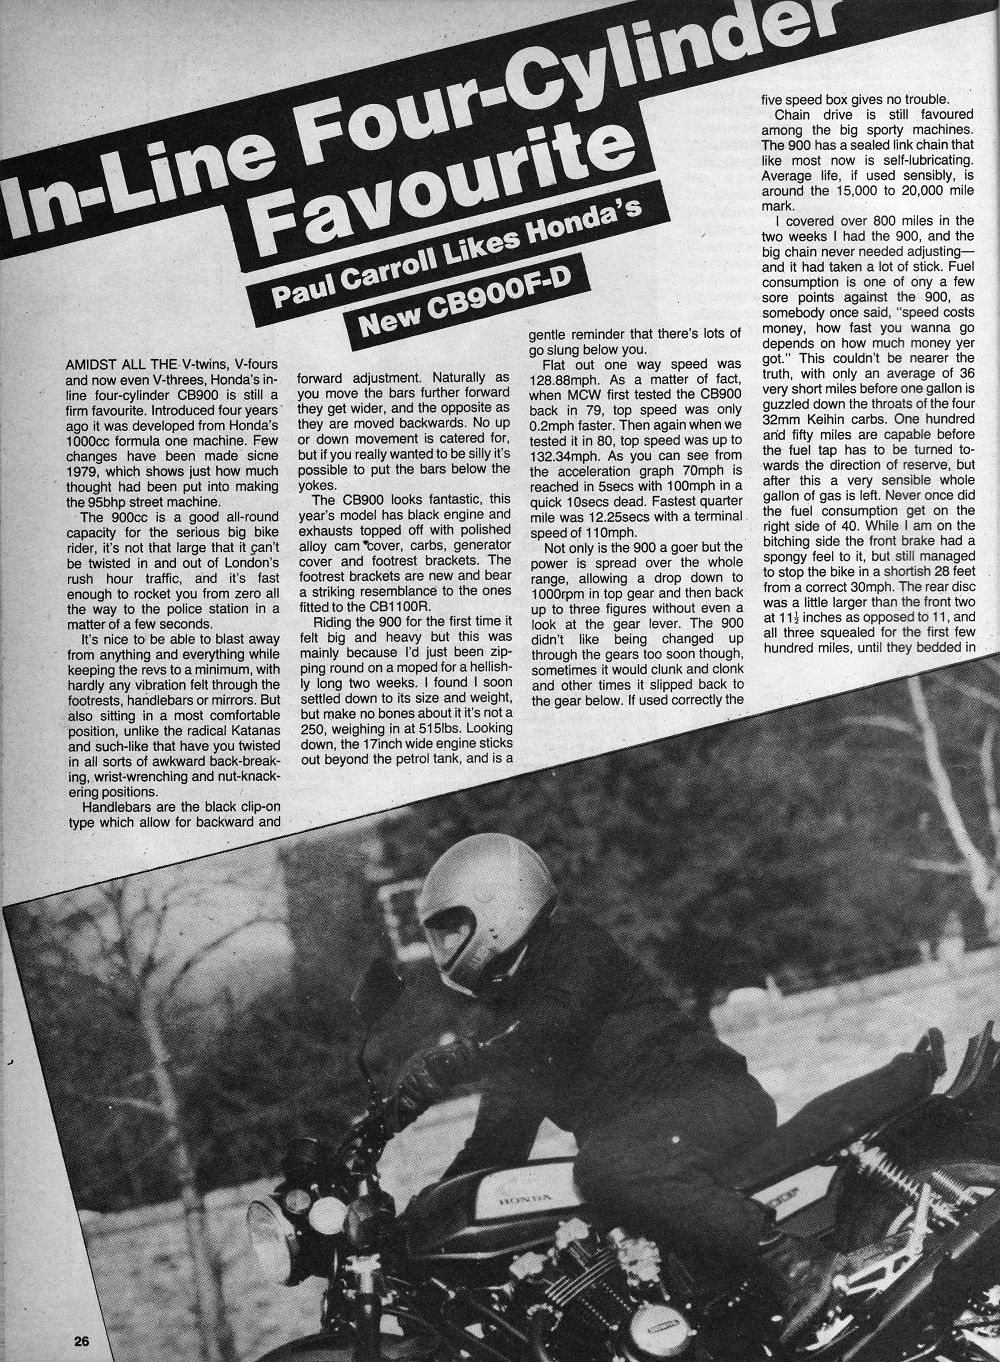 1983 Honda CB900F-D road test.1.jpg